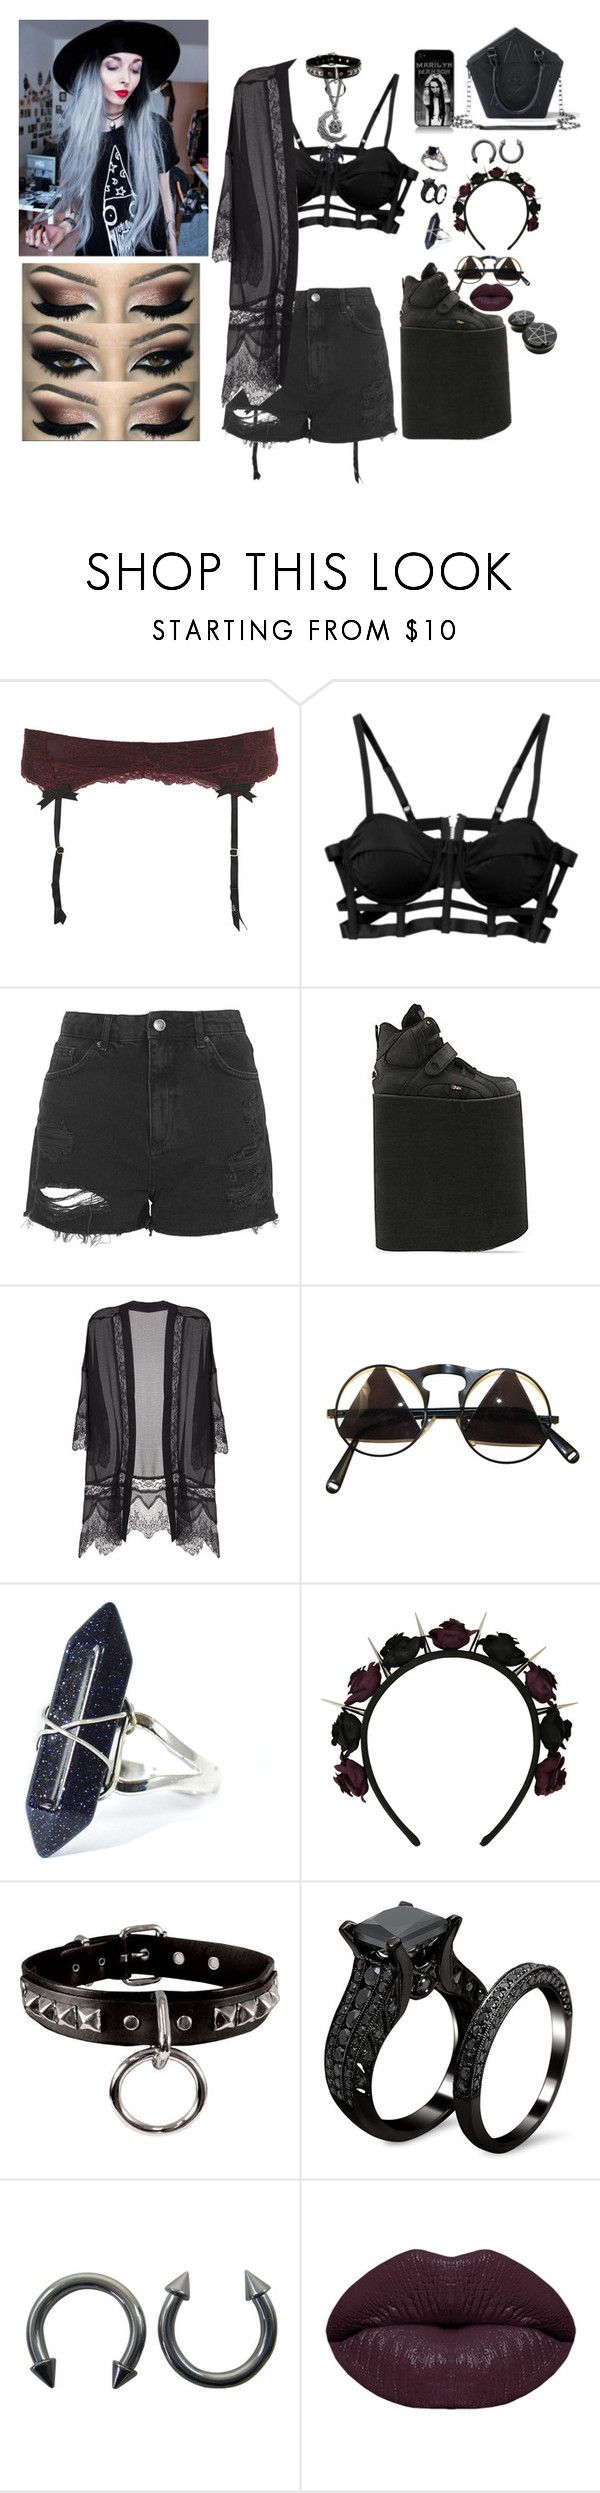 """""""Golden Days~Panic! At The Disco"""" by headbangingunicorn ❤ liked on Polyvore featuring Topshop, Buffalo, Lush Clothing, Winky Lux and Killstar"""